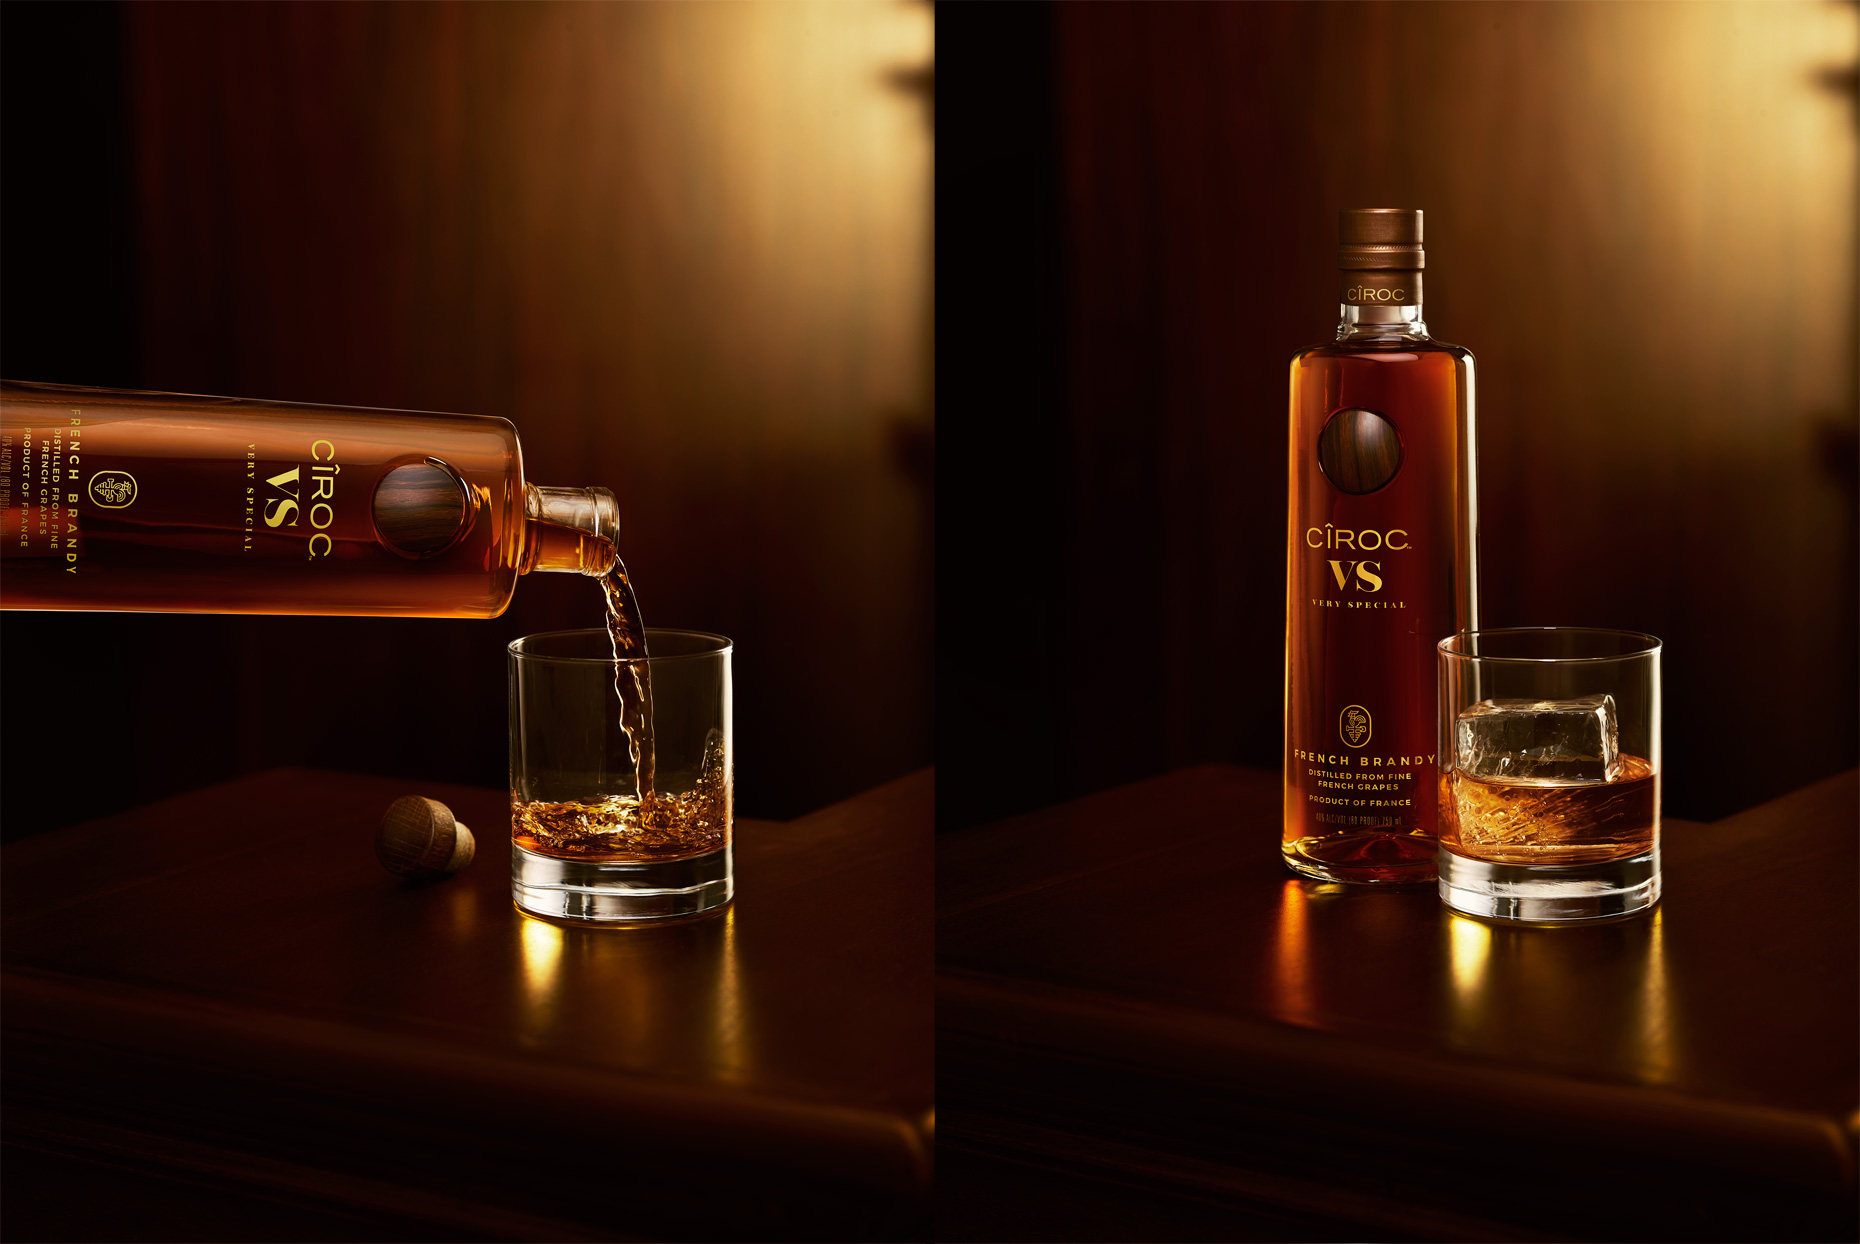 Ciroc VS bottle pouring brandy into a glass, photographed by Food & Beverage Photographer Adrian Mueller New York